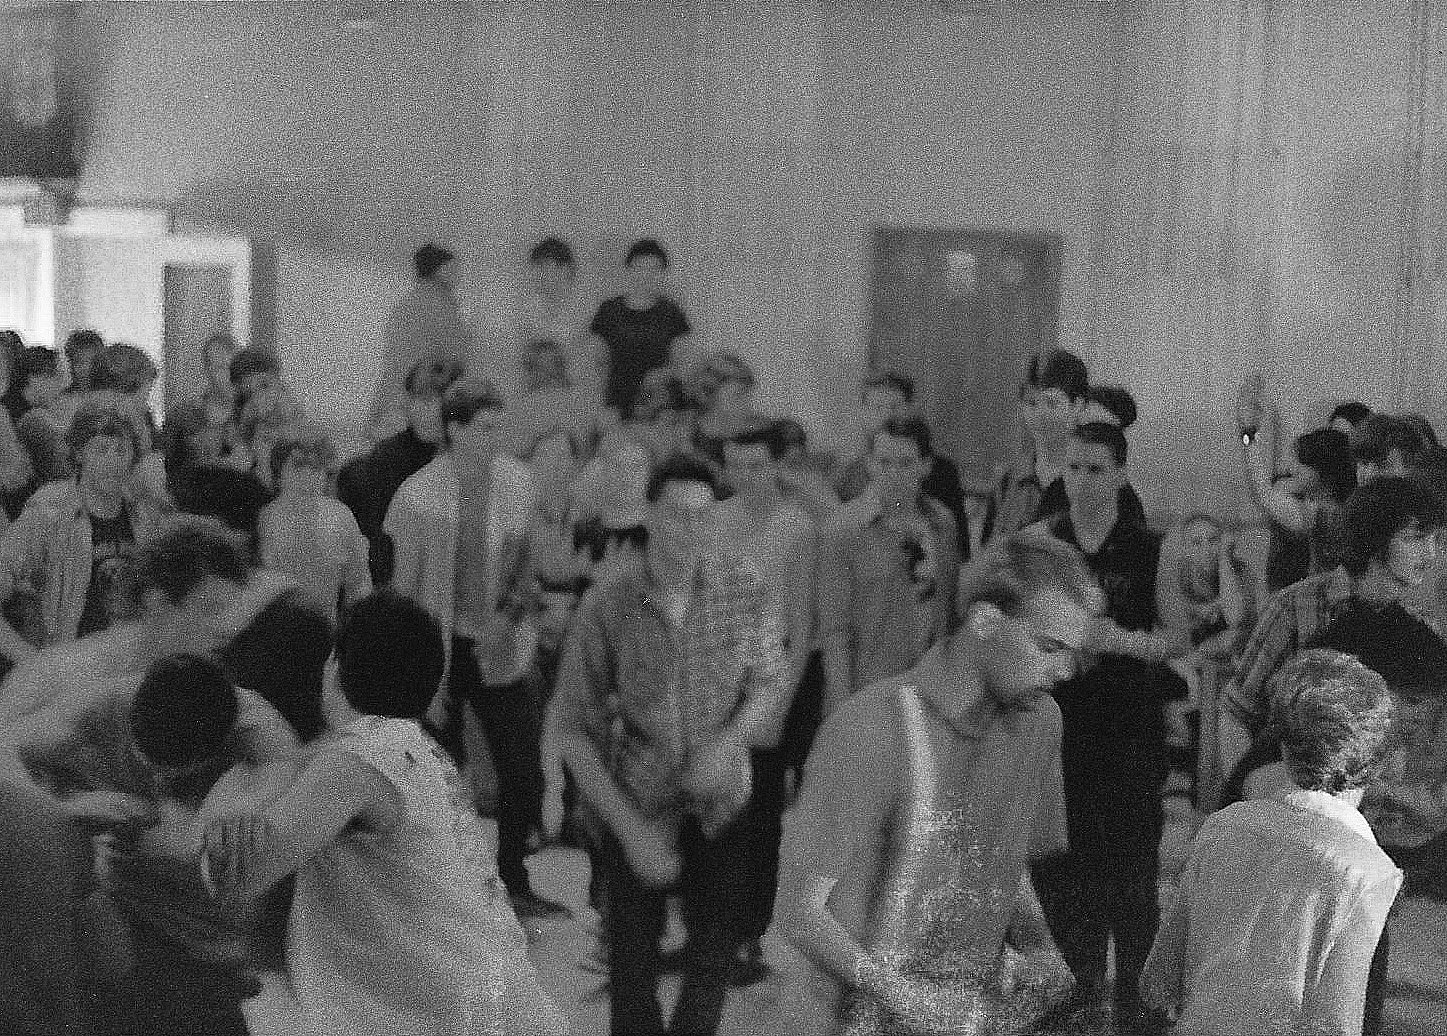 The crowd at Minor Threat